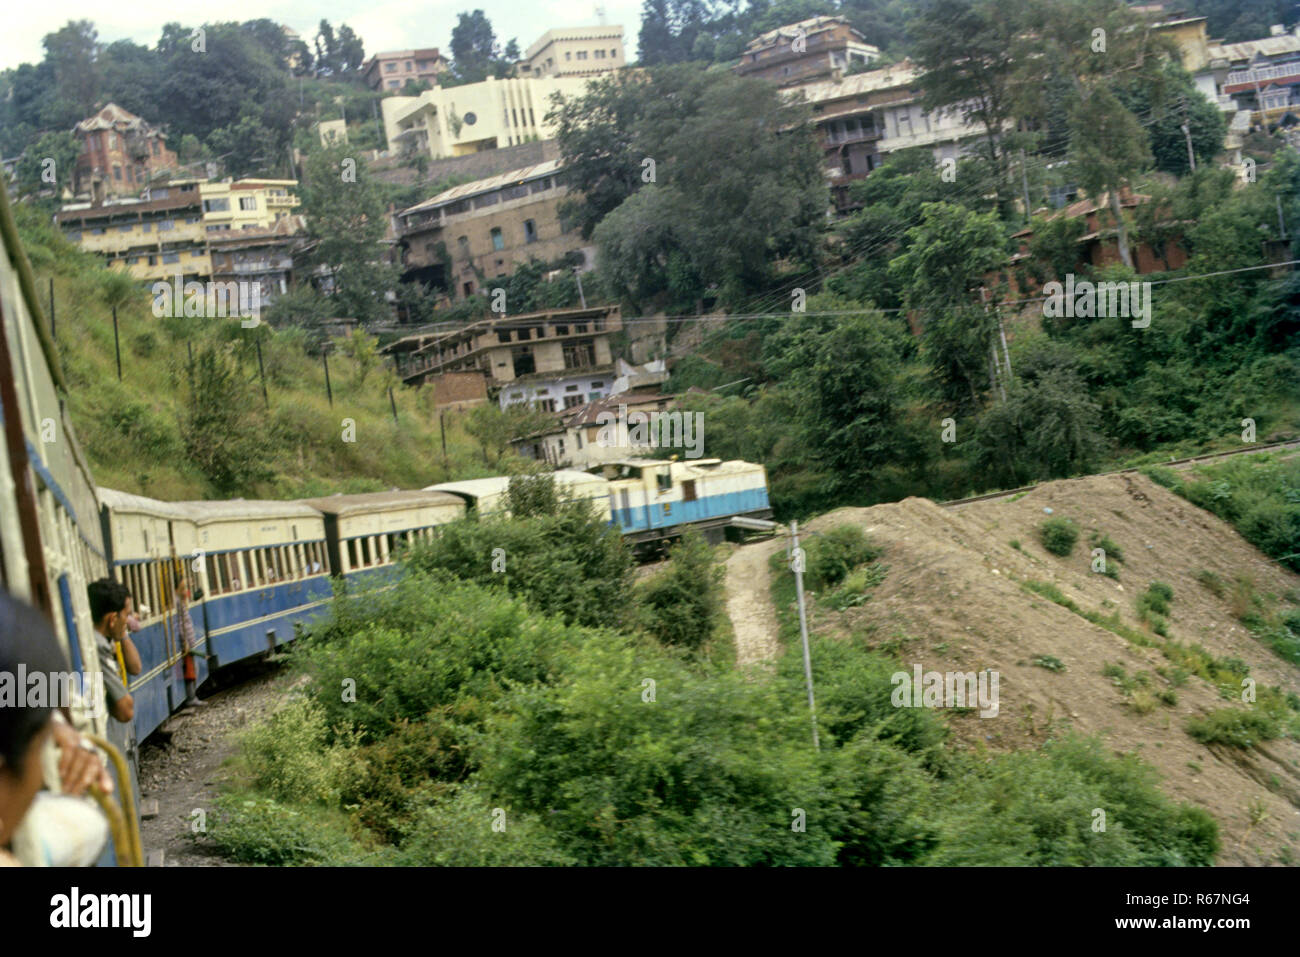 Trains Railways, kalka shimla train journey, himachal pradesh, india - Stock Image